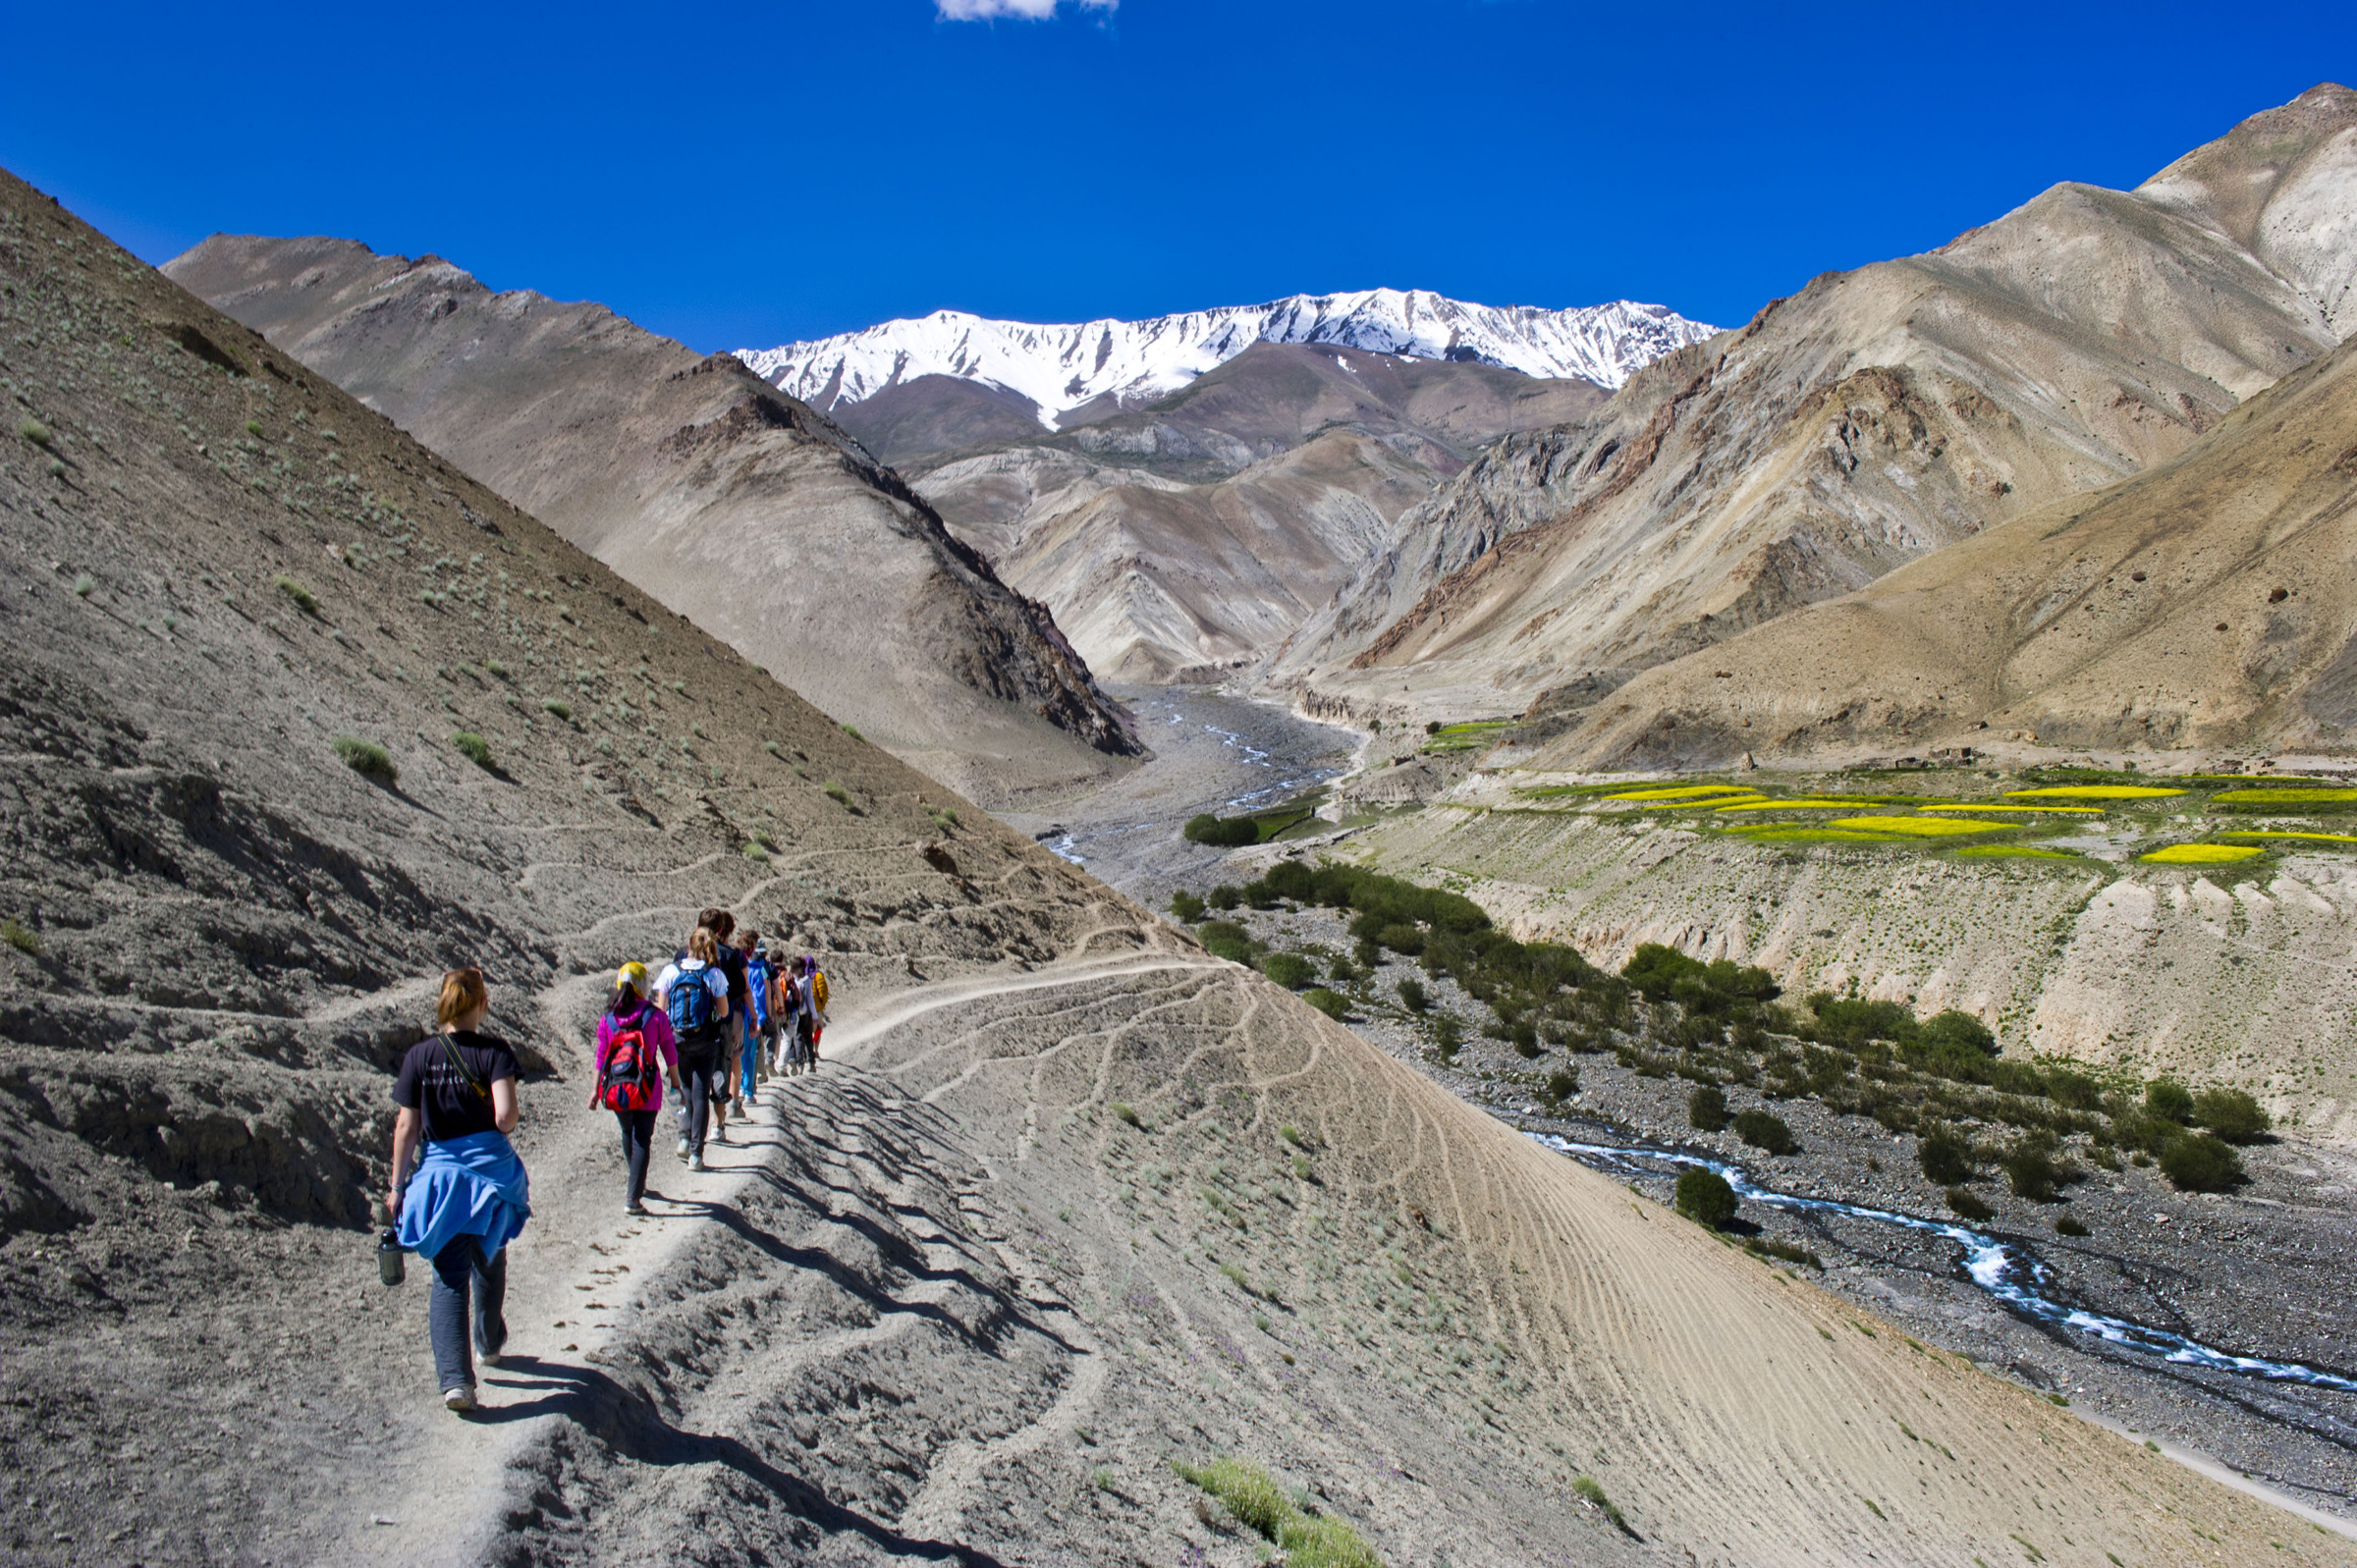 trekking on path in Ladakh